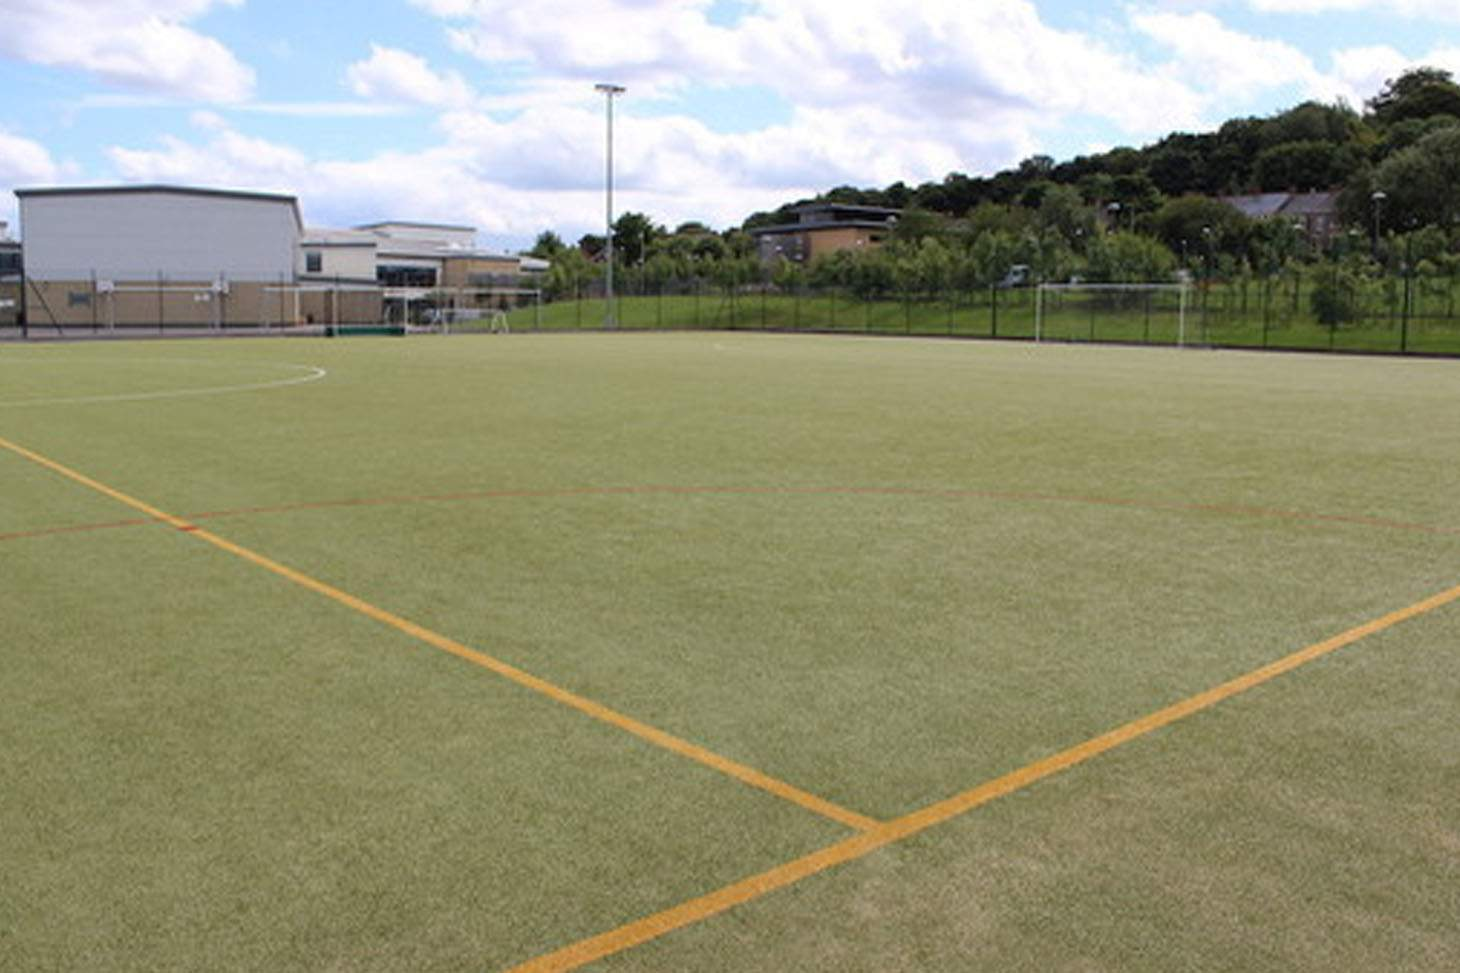 Kingsmeadow Community School 11 a side | Astroturf football pitch